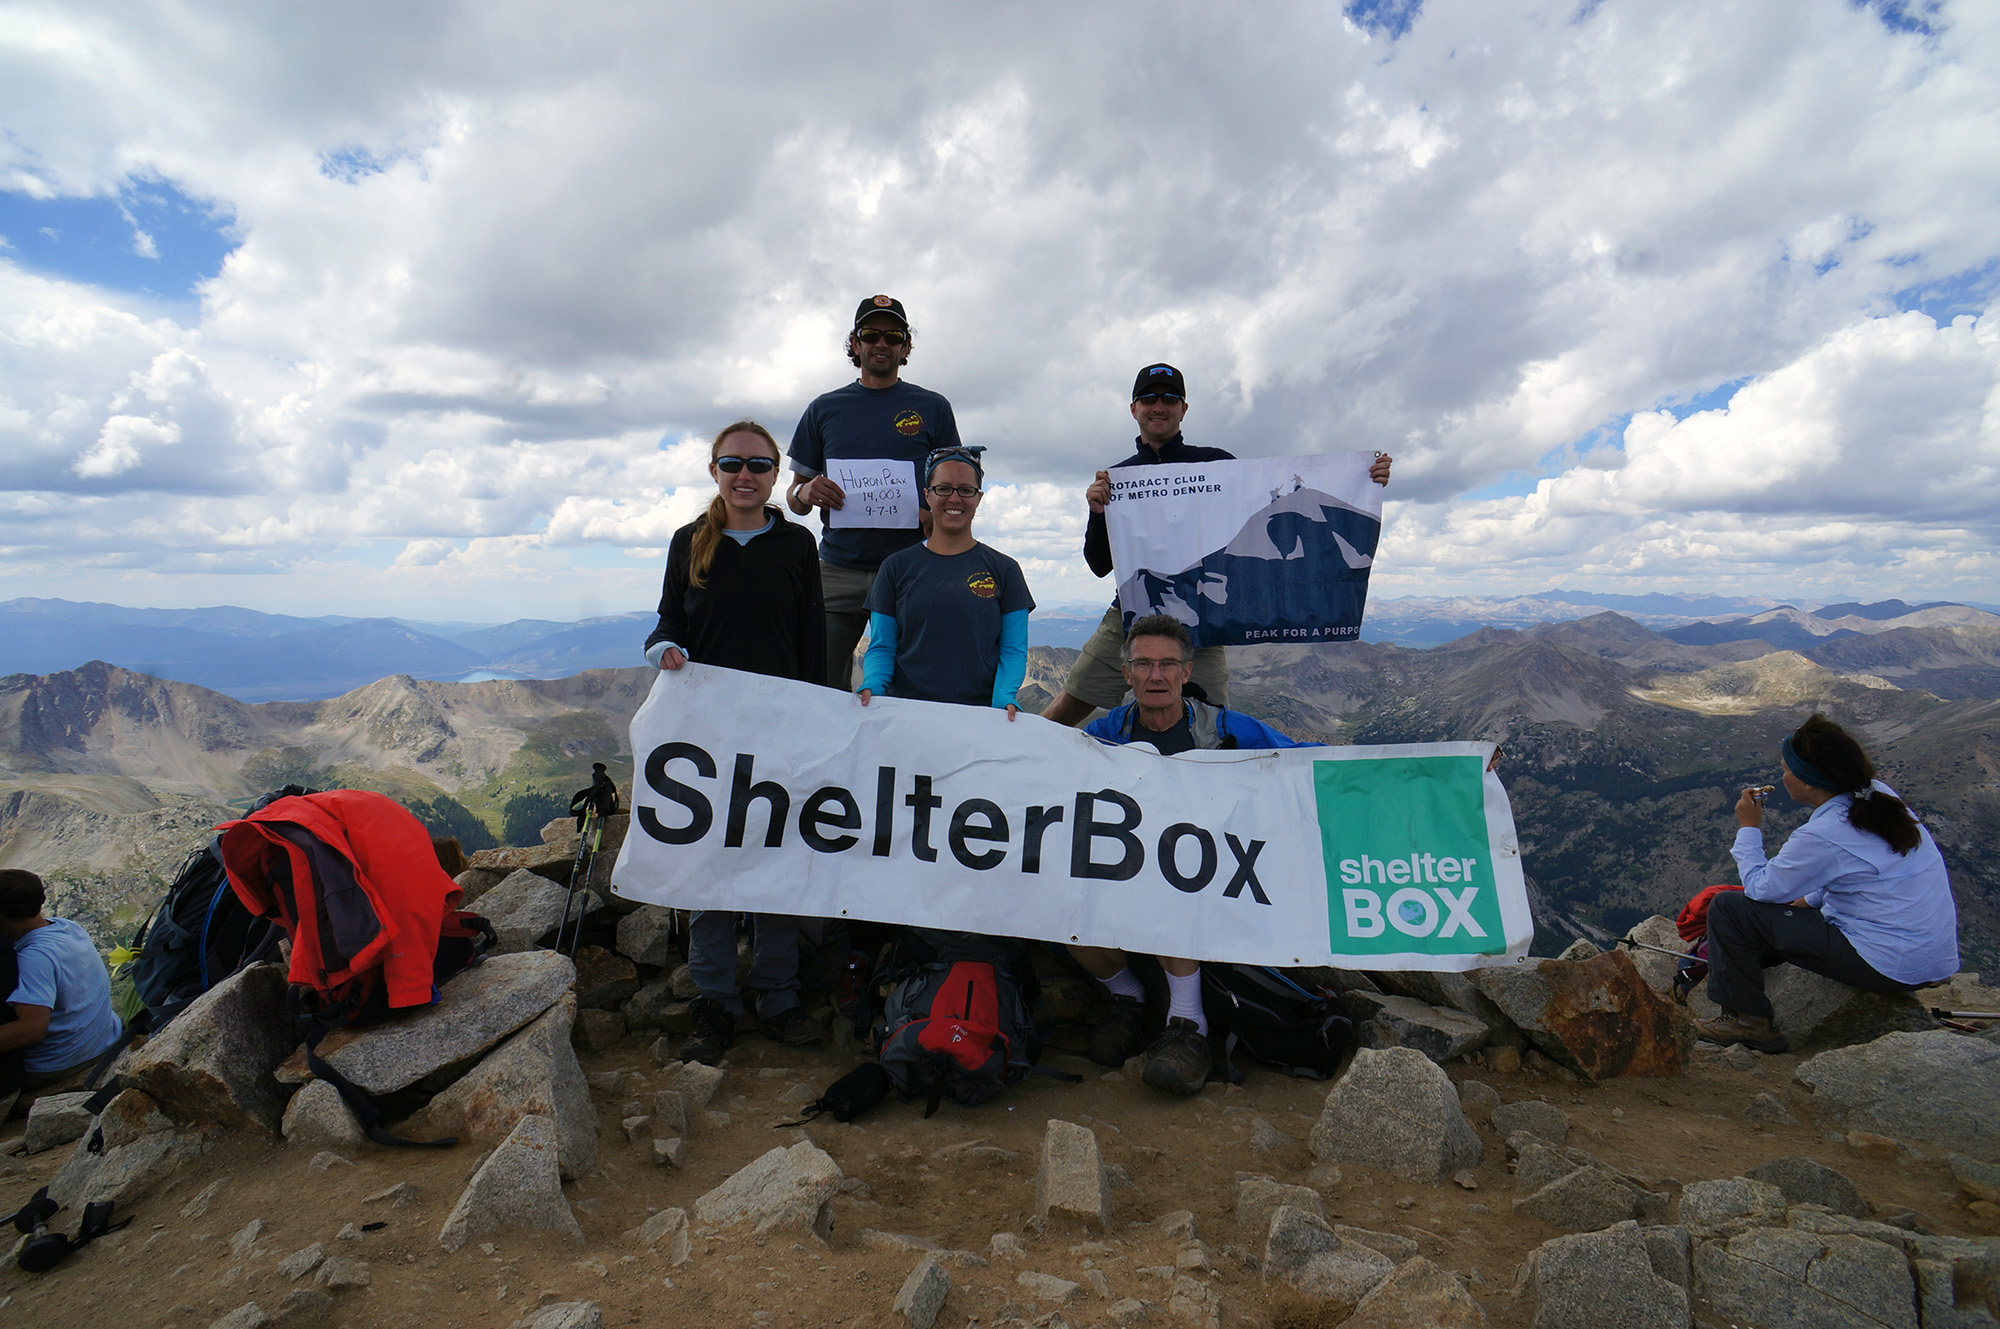 ShelterBox - Do Your Own Thing - Huron Peak